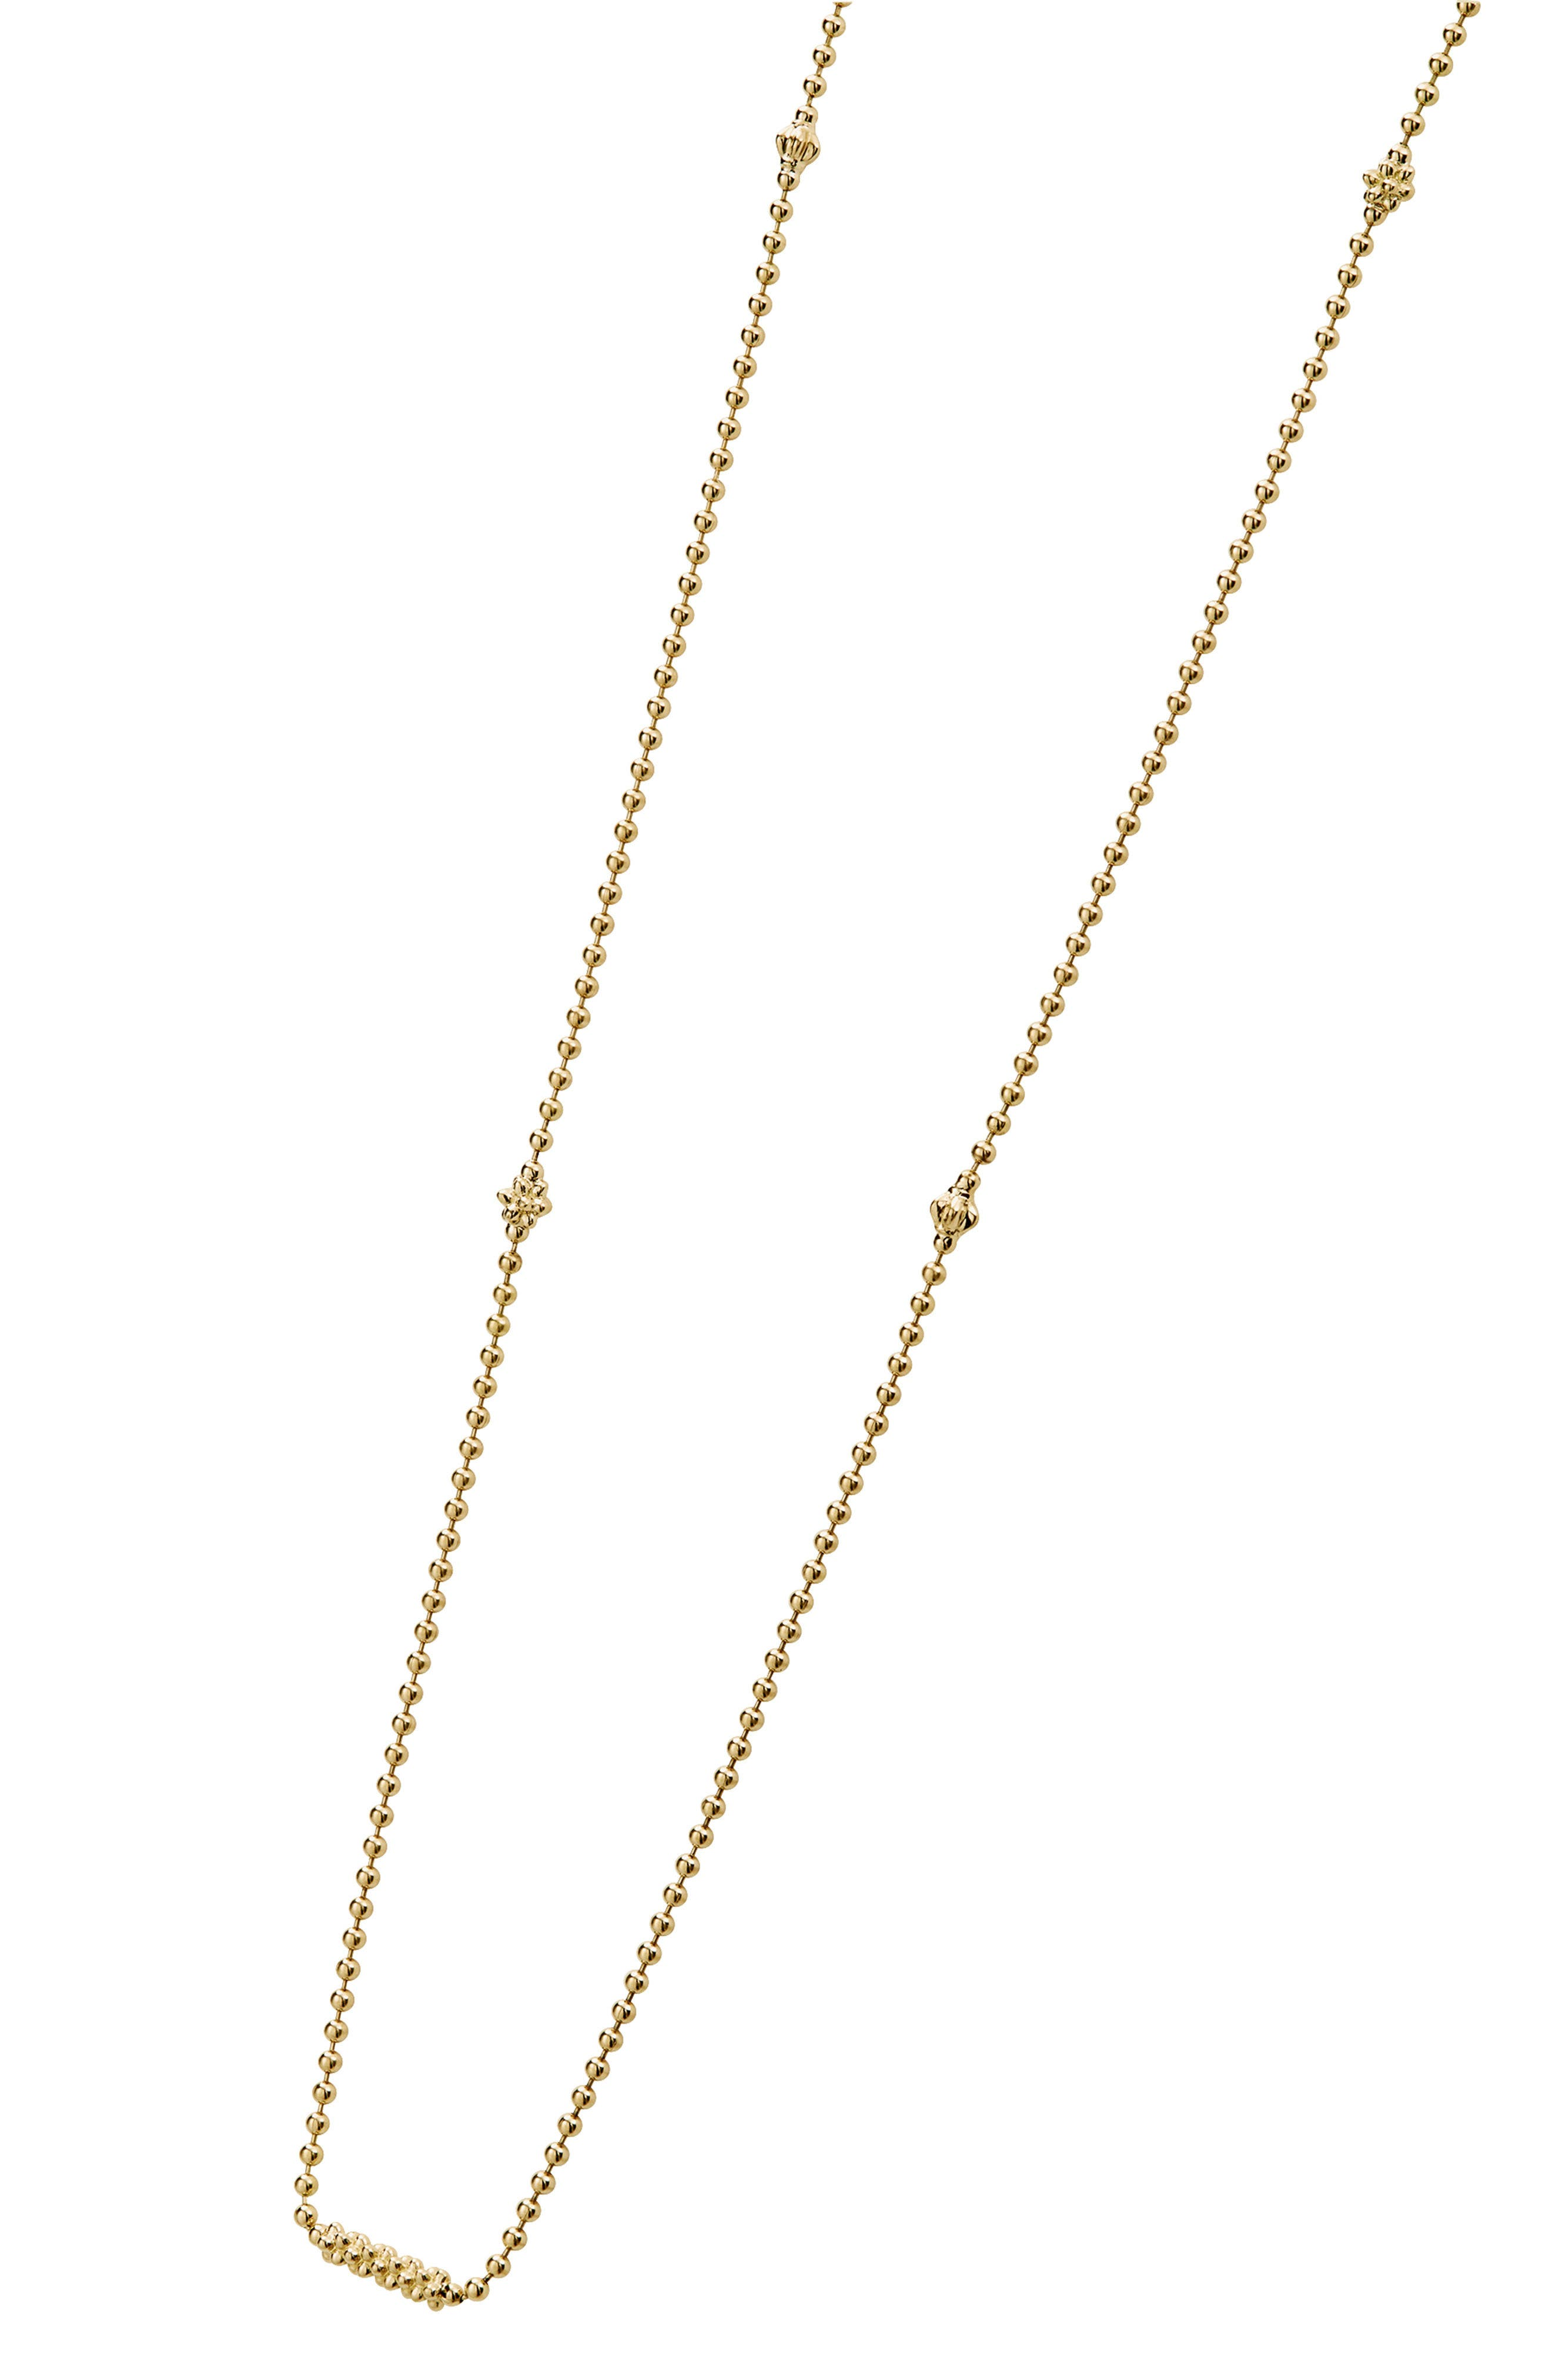 Caviar Bars & Cages Chain Necklace,                             Alternate thumbnail 3, color,                             GOLD